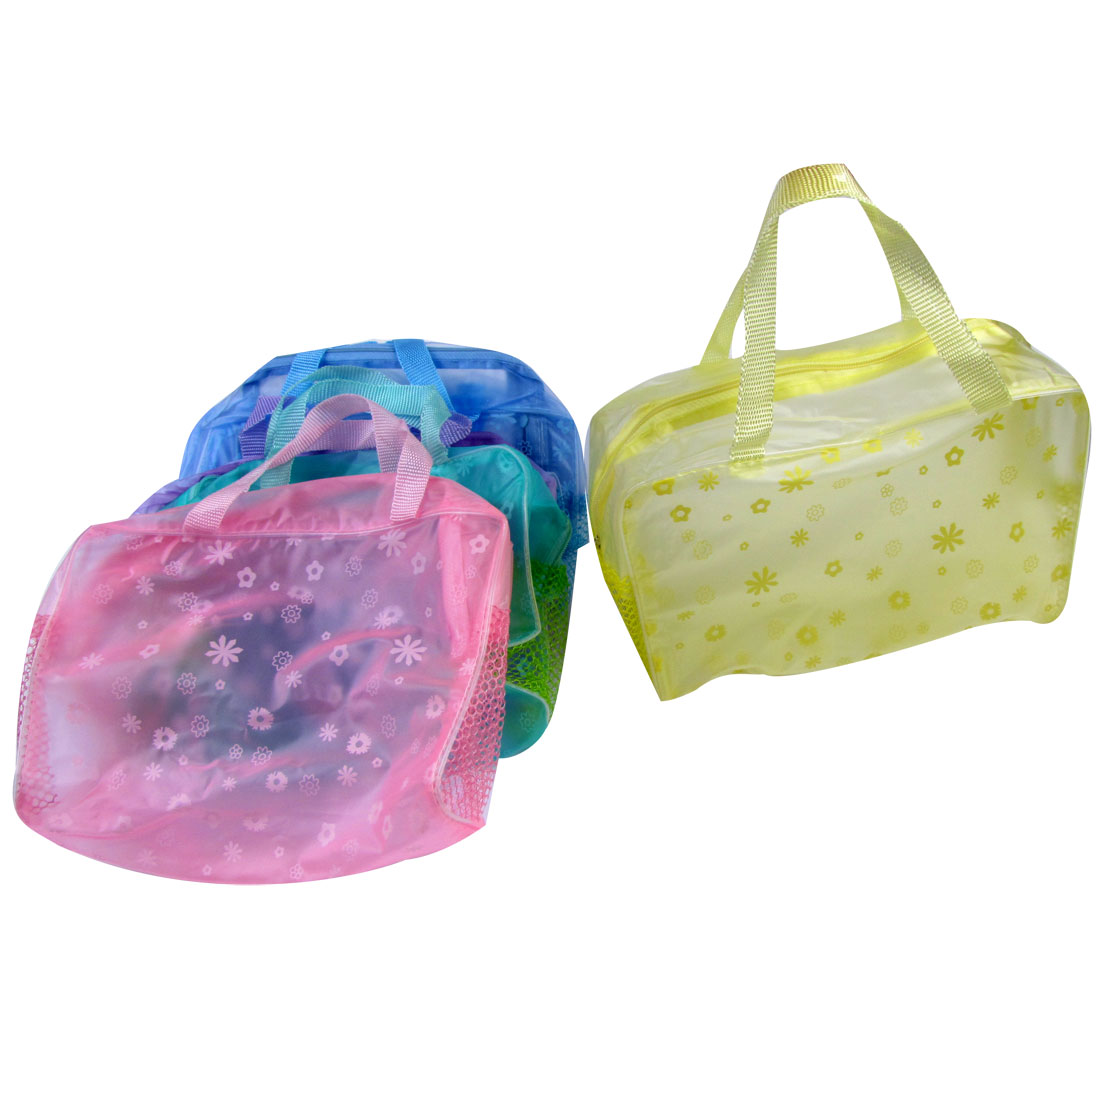 5 Pcs Travel Plastic Frame Flowers Pattern Colorful Zipper Cosmetic Makeup Bag